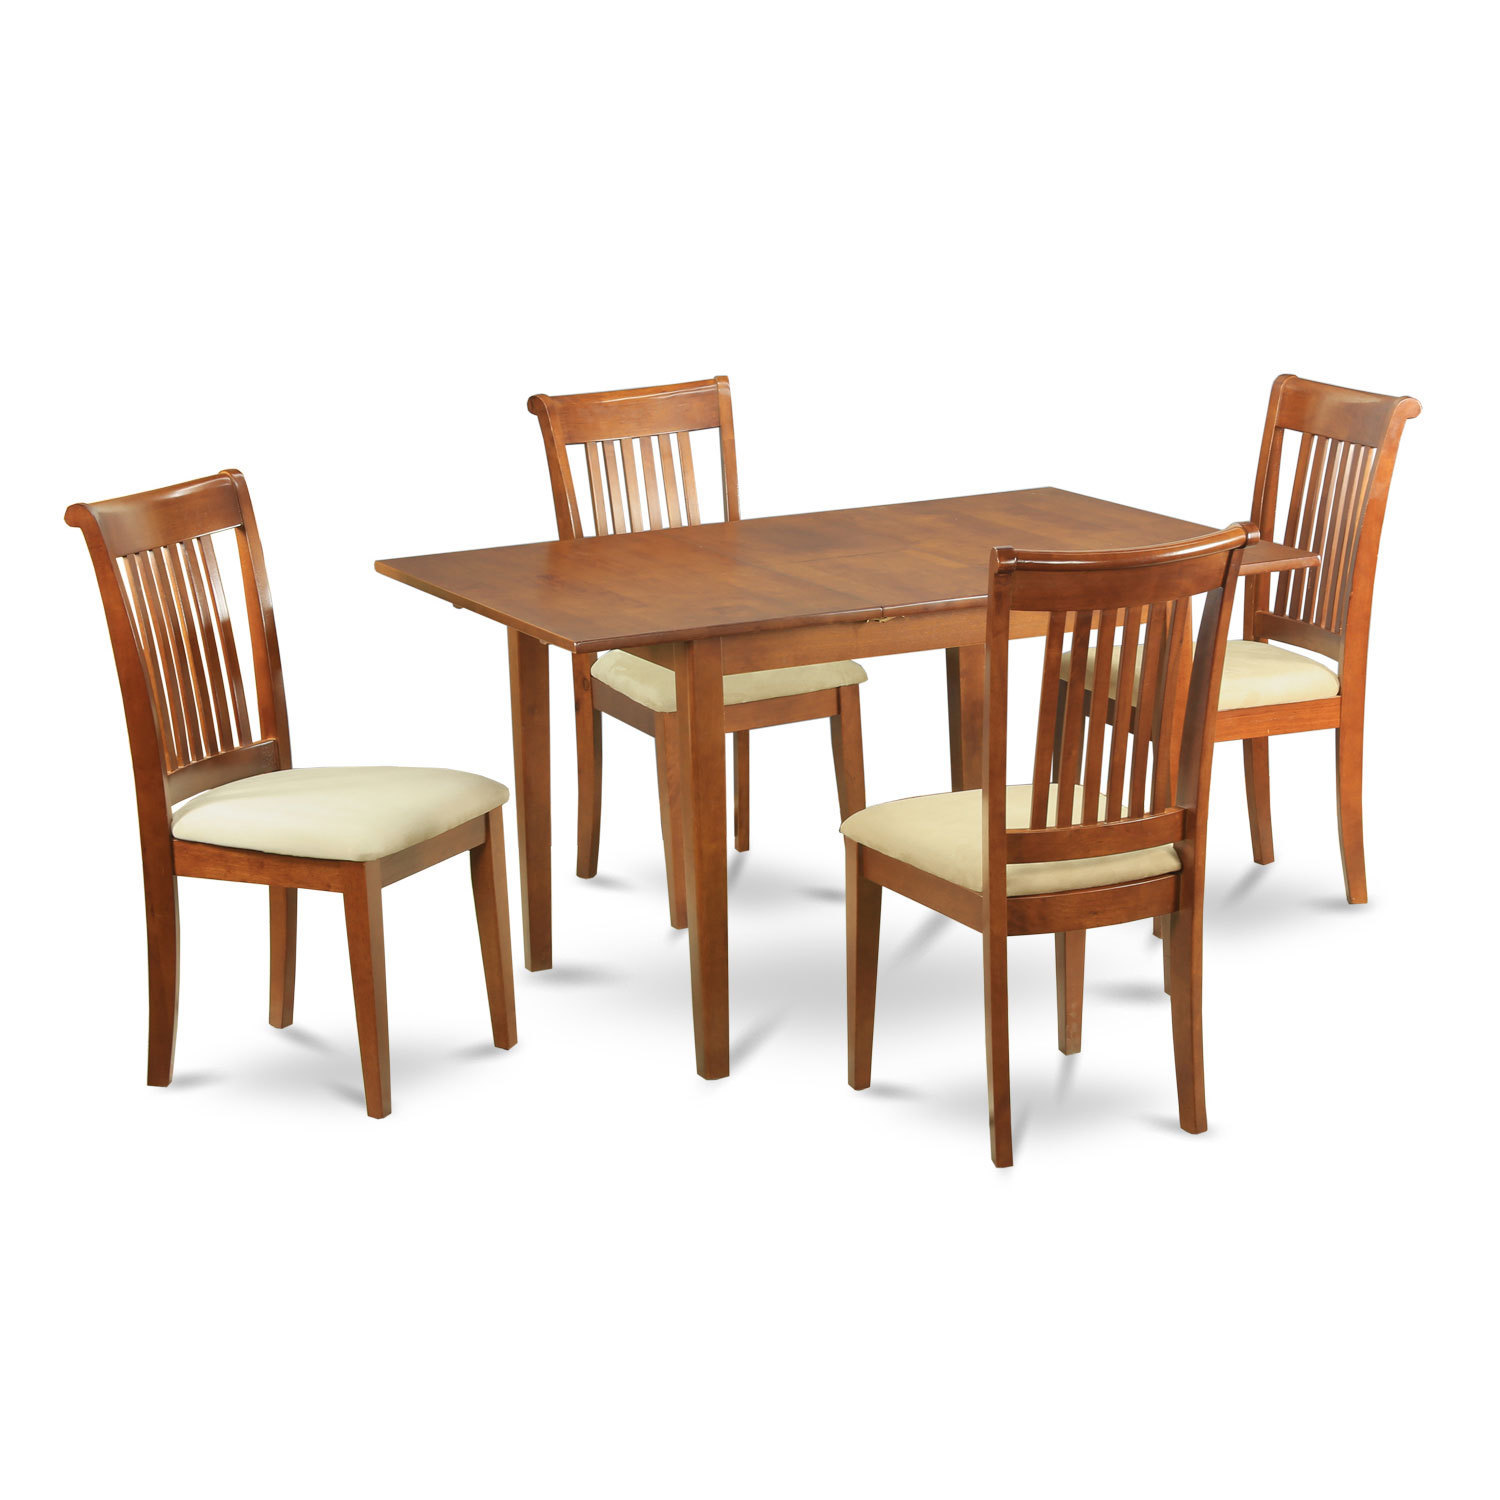 Small dinette set design homesfeed for Small dining room chairs